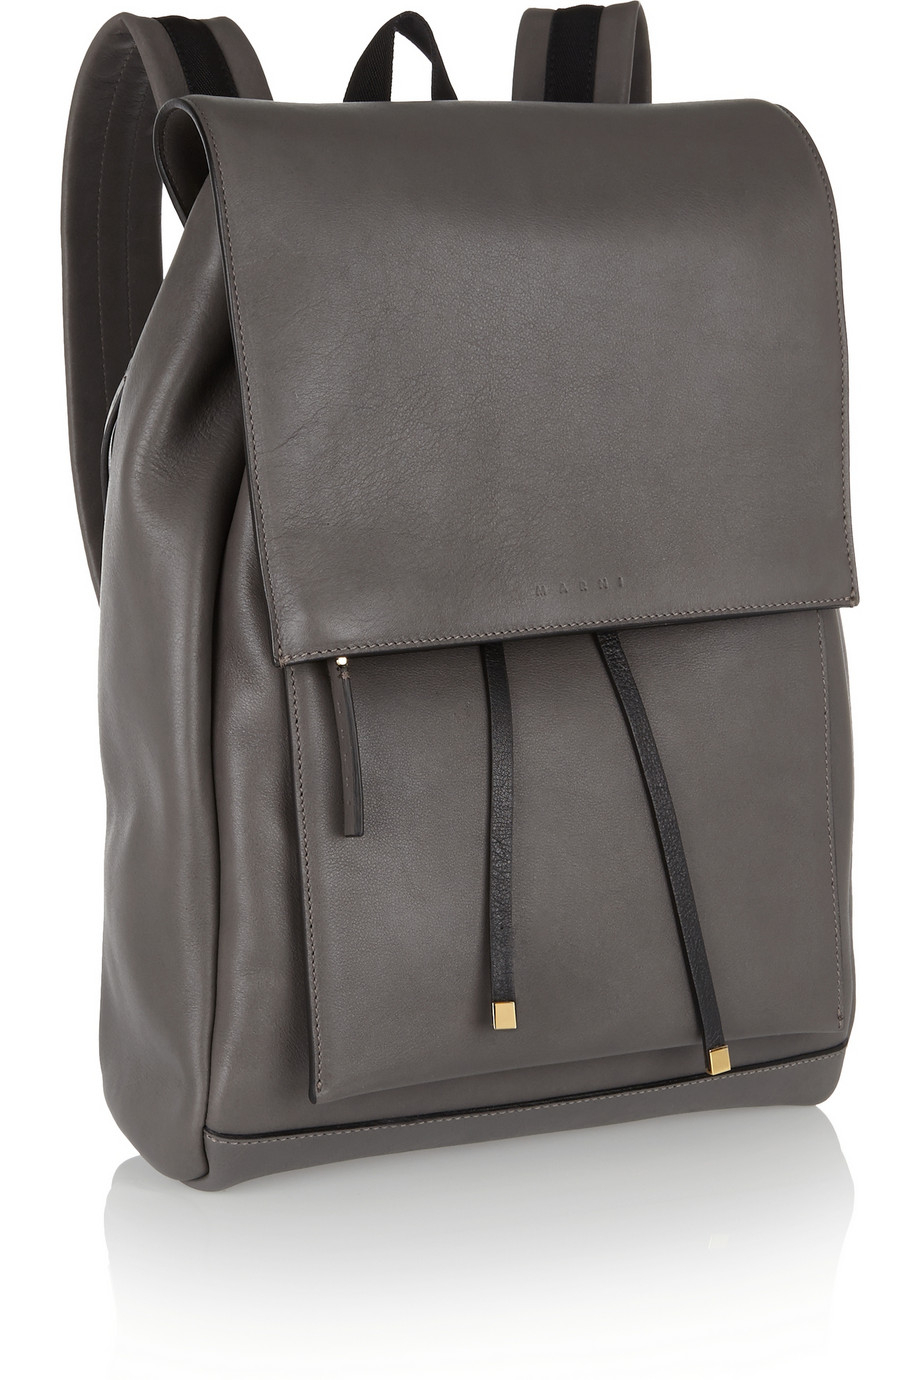 Gray Leather Backpack 22T00aZX